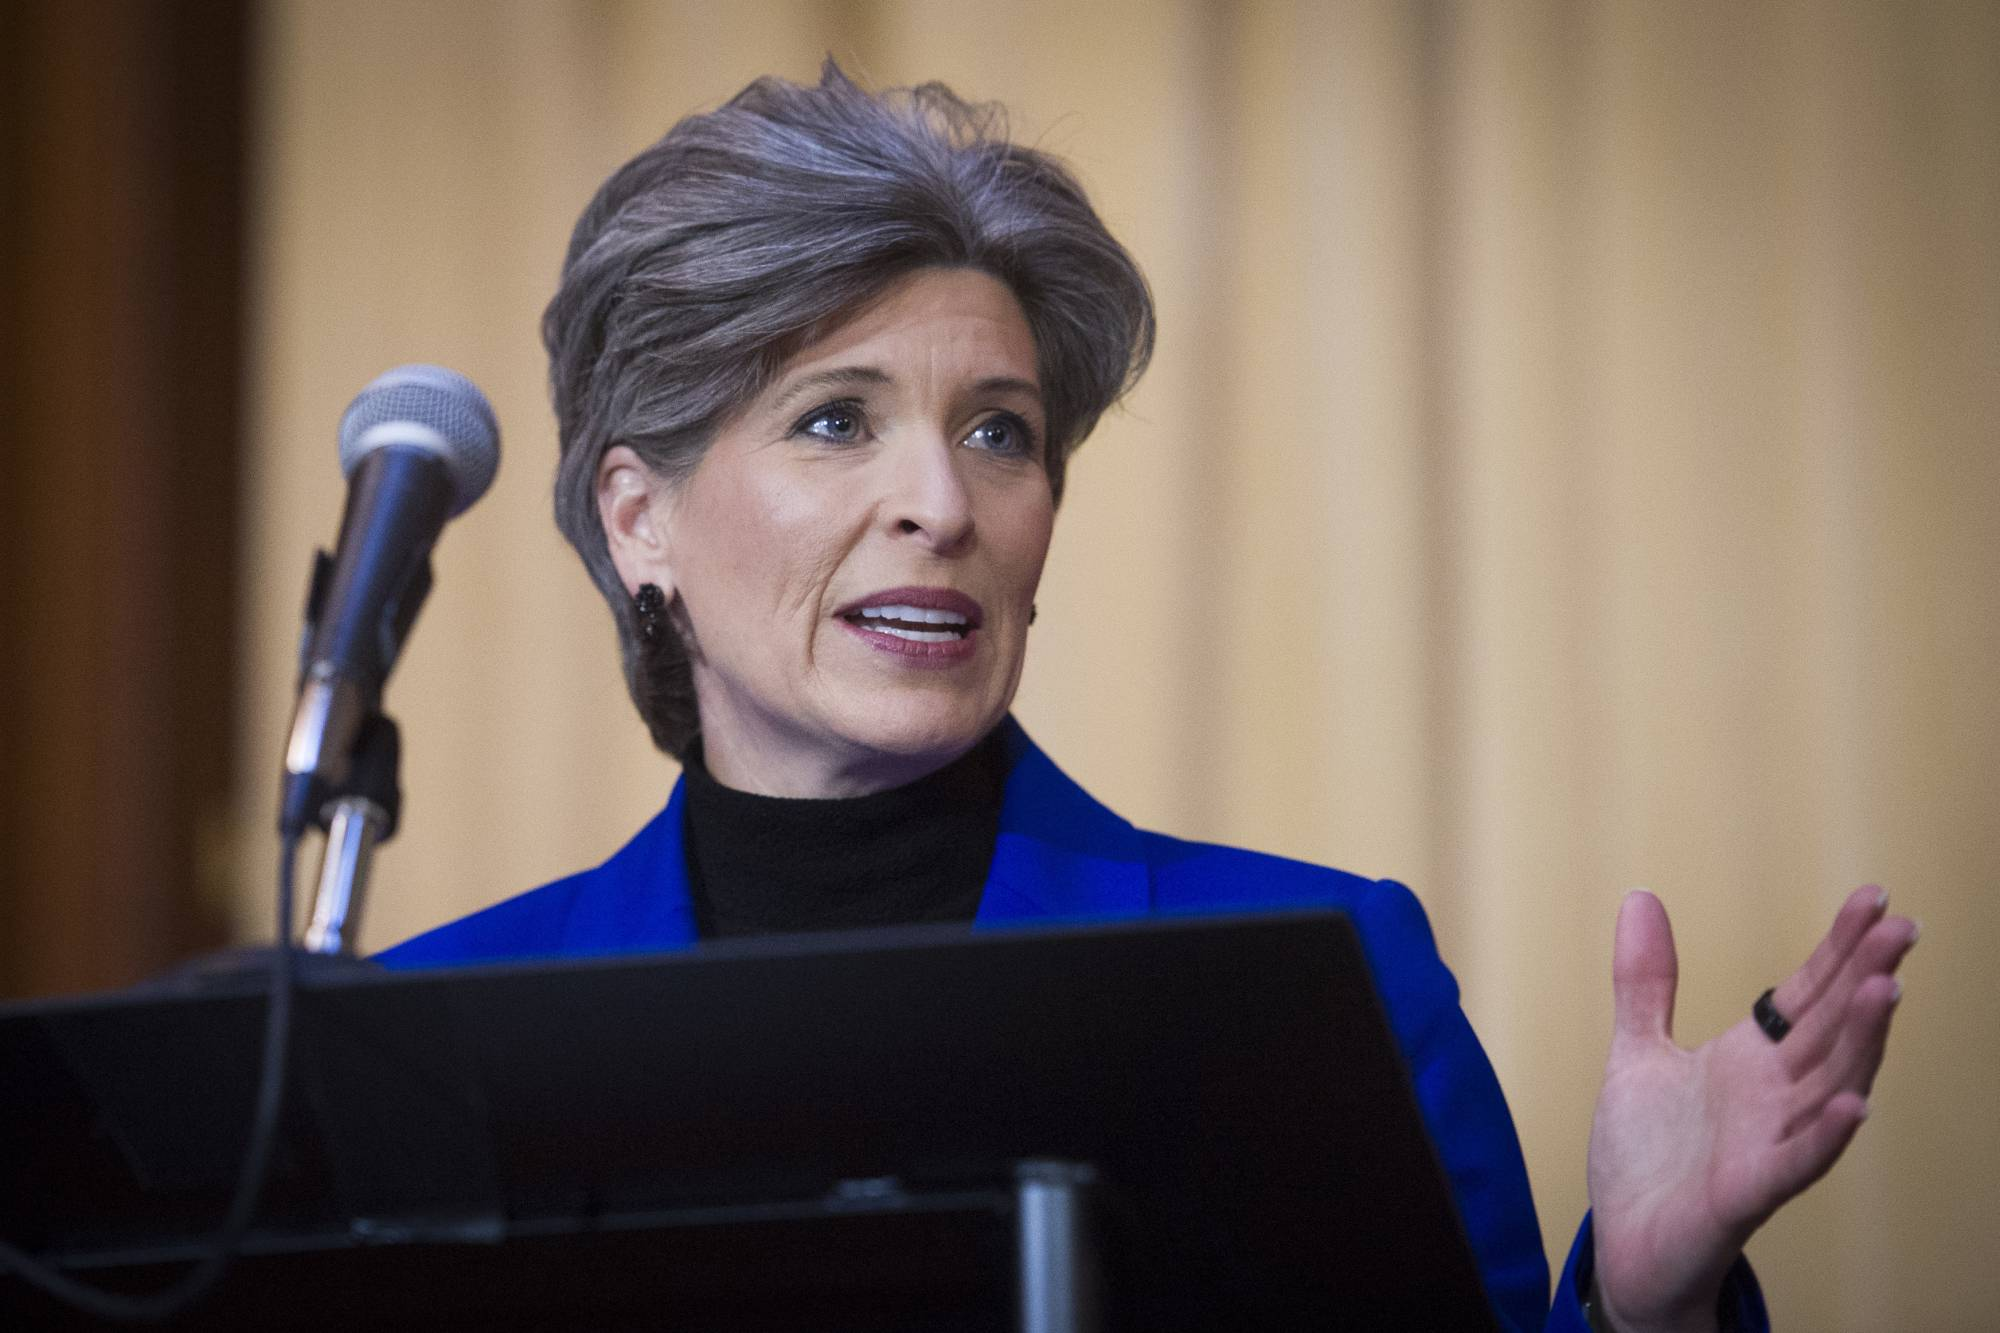 FILE - In this Dec. 11, 2018 file photo, Sen. Joni Ernst, R-Iowa, speaks during the signing of an order withdrawing federal protections for countless waterways and wetlands, at EPA headquarters in Washington. Ernst says she turned down Donald Trump's request to run as his vice president in 2016 because of family concerns. Ernst made the claim in an affidavit in a divorce proceeding in October that was first reported by CityView, a Des Moines weekly newspaper. The filing was unsealed earlier this month after Ernst and her former husband of 25 years, Gail Ernst, settled their previously contentious divorce. (AP Photo/Cliff Owen, File)